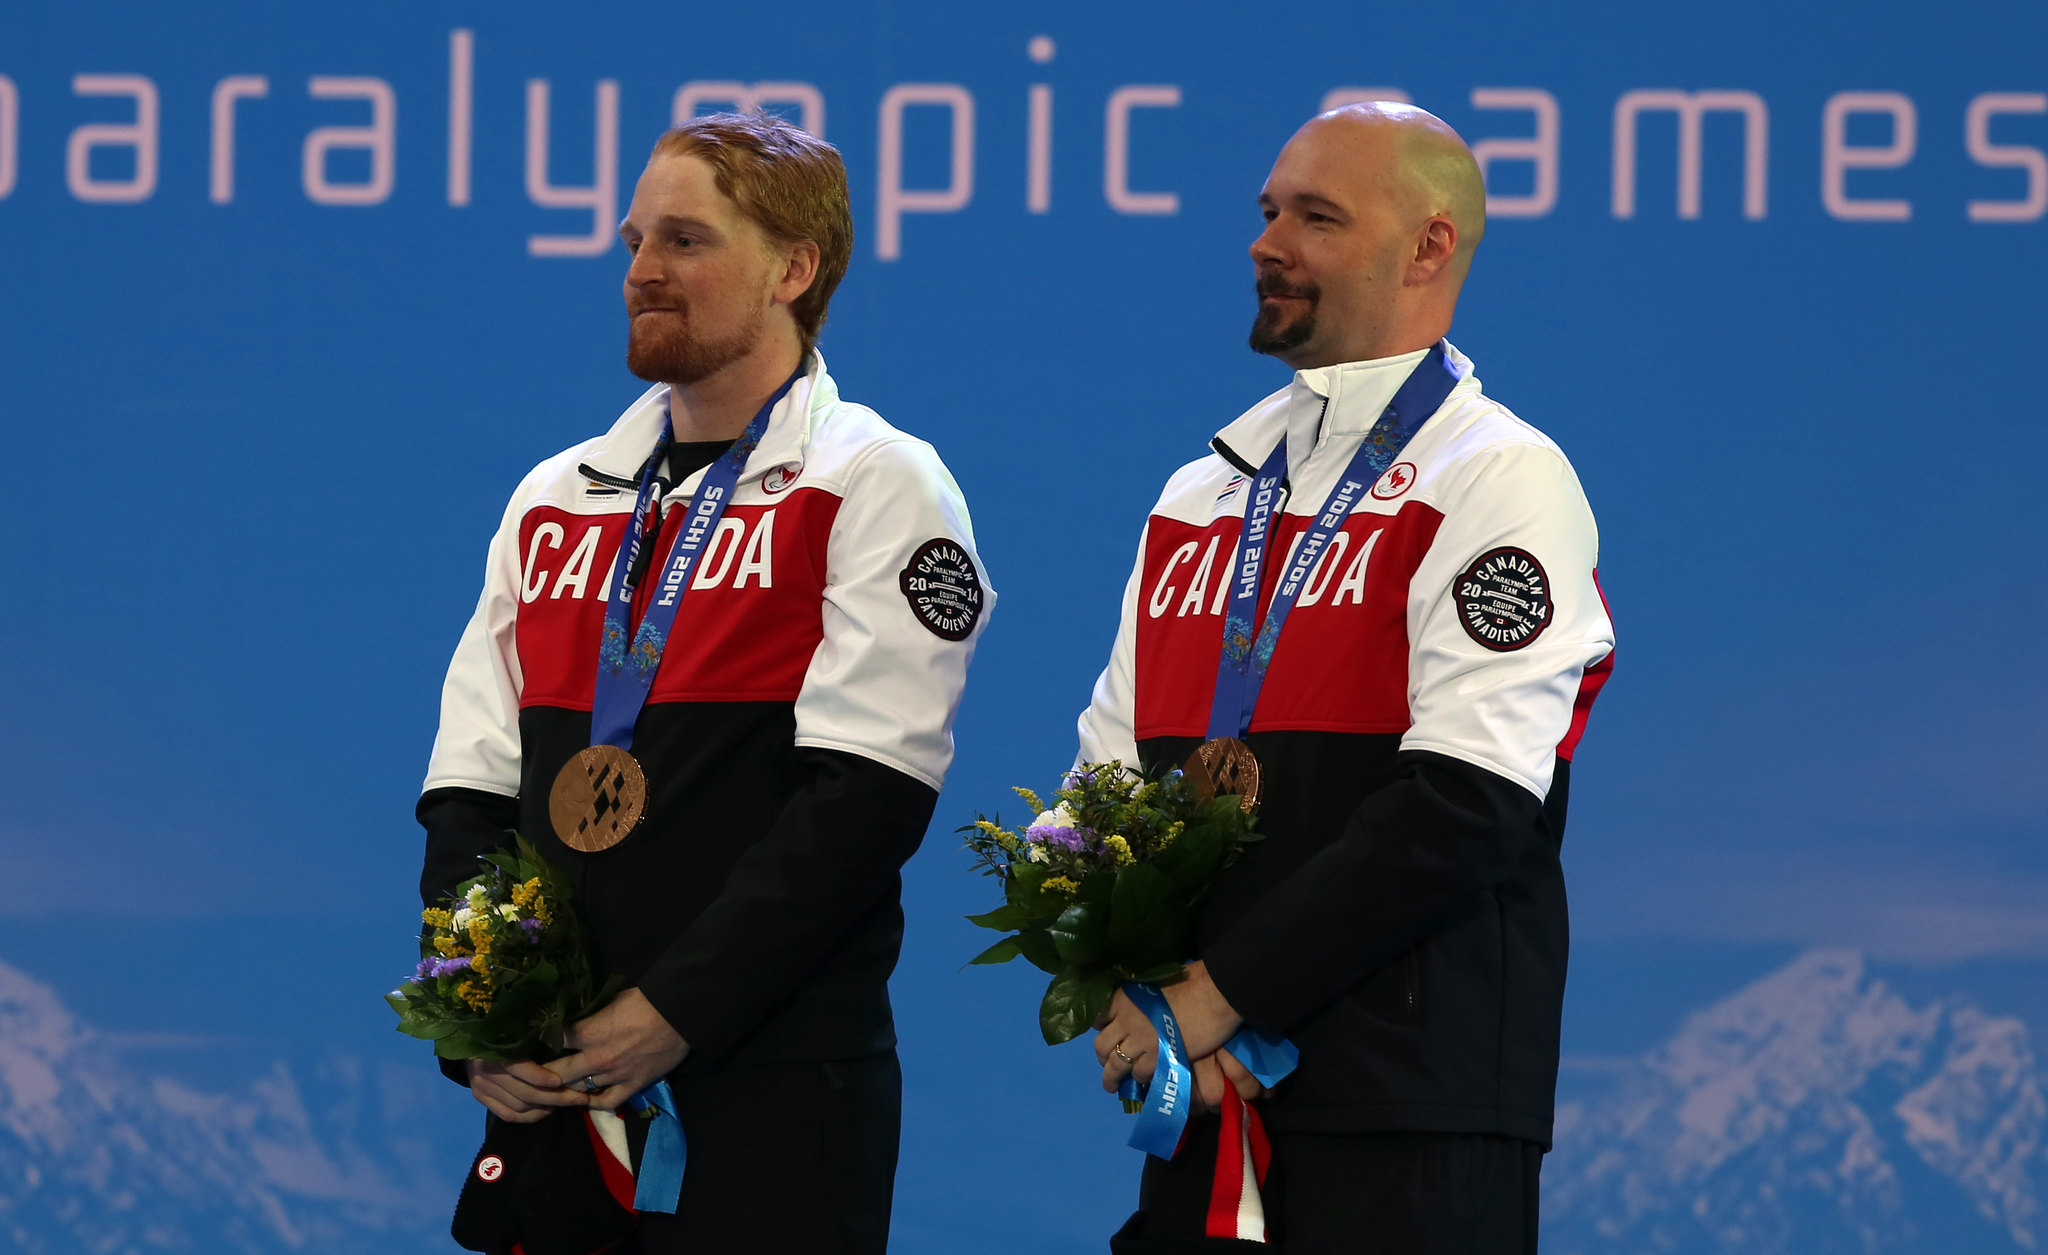 Williamson and Brush celebrate their bonze medal win in the slalom at the 2014 Paralympic Winter Games in Sochi, Russia